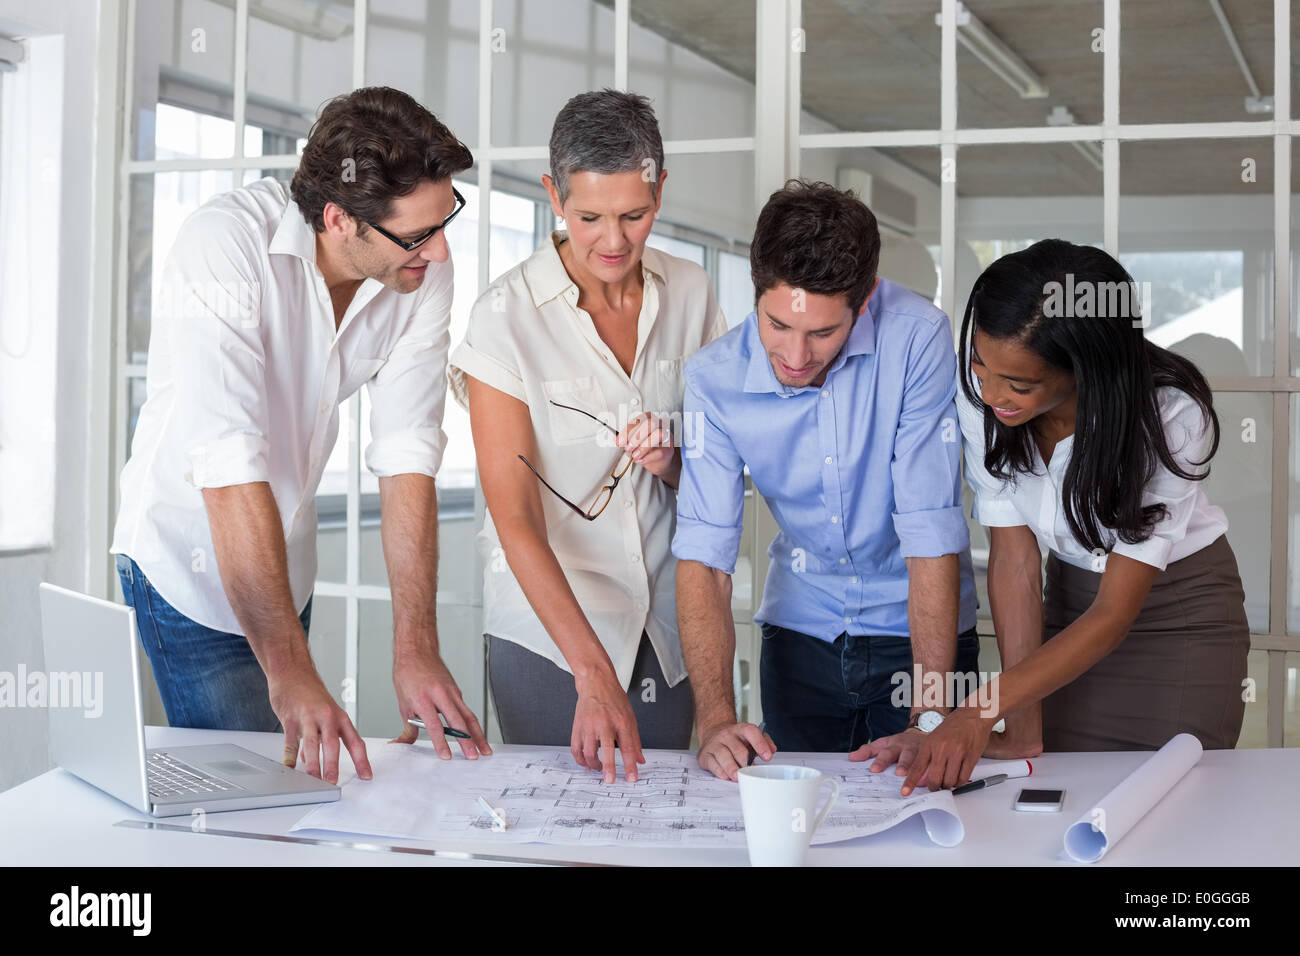 Attractive business people working hard on plans - Stock Image